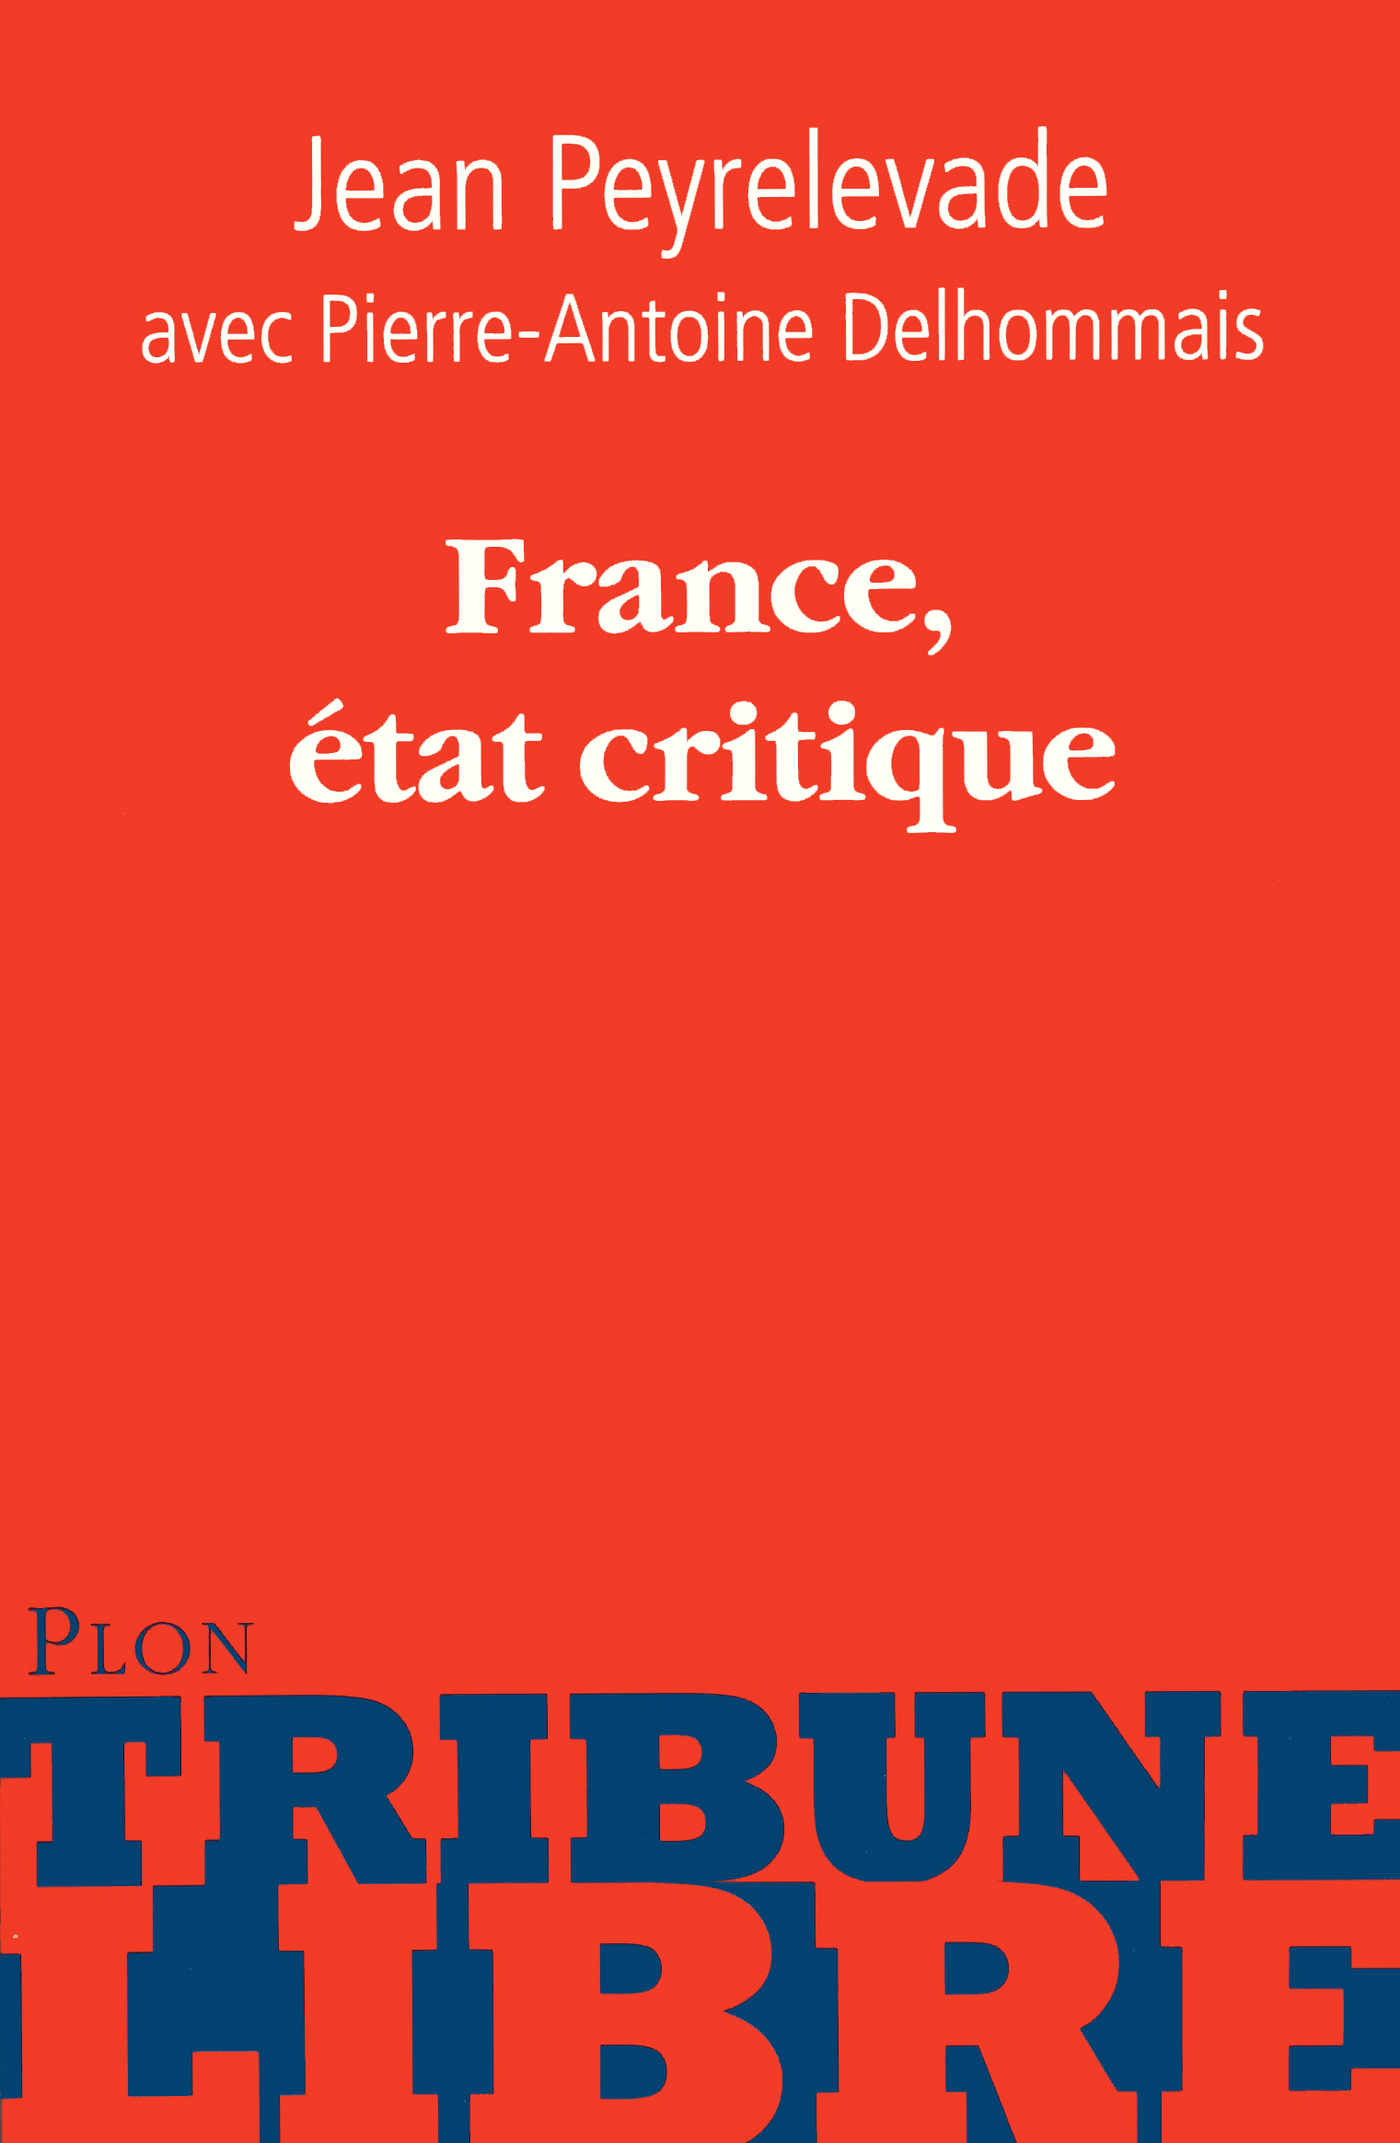 France, état critique